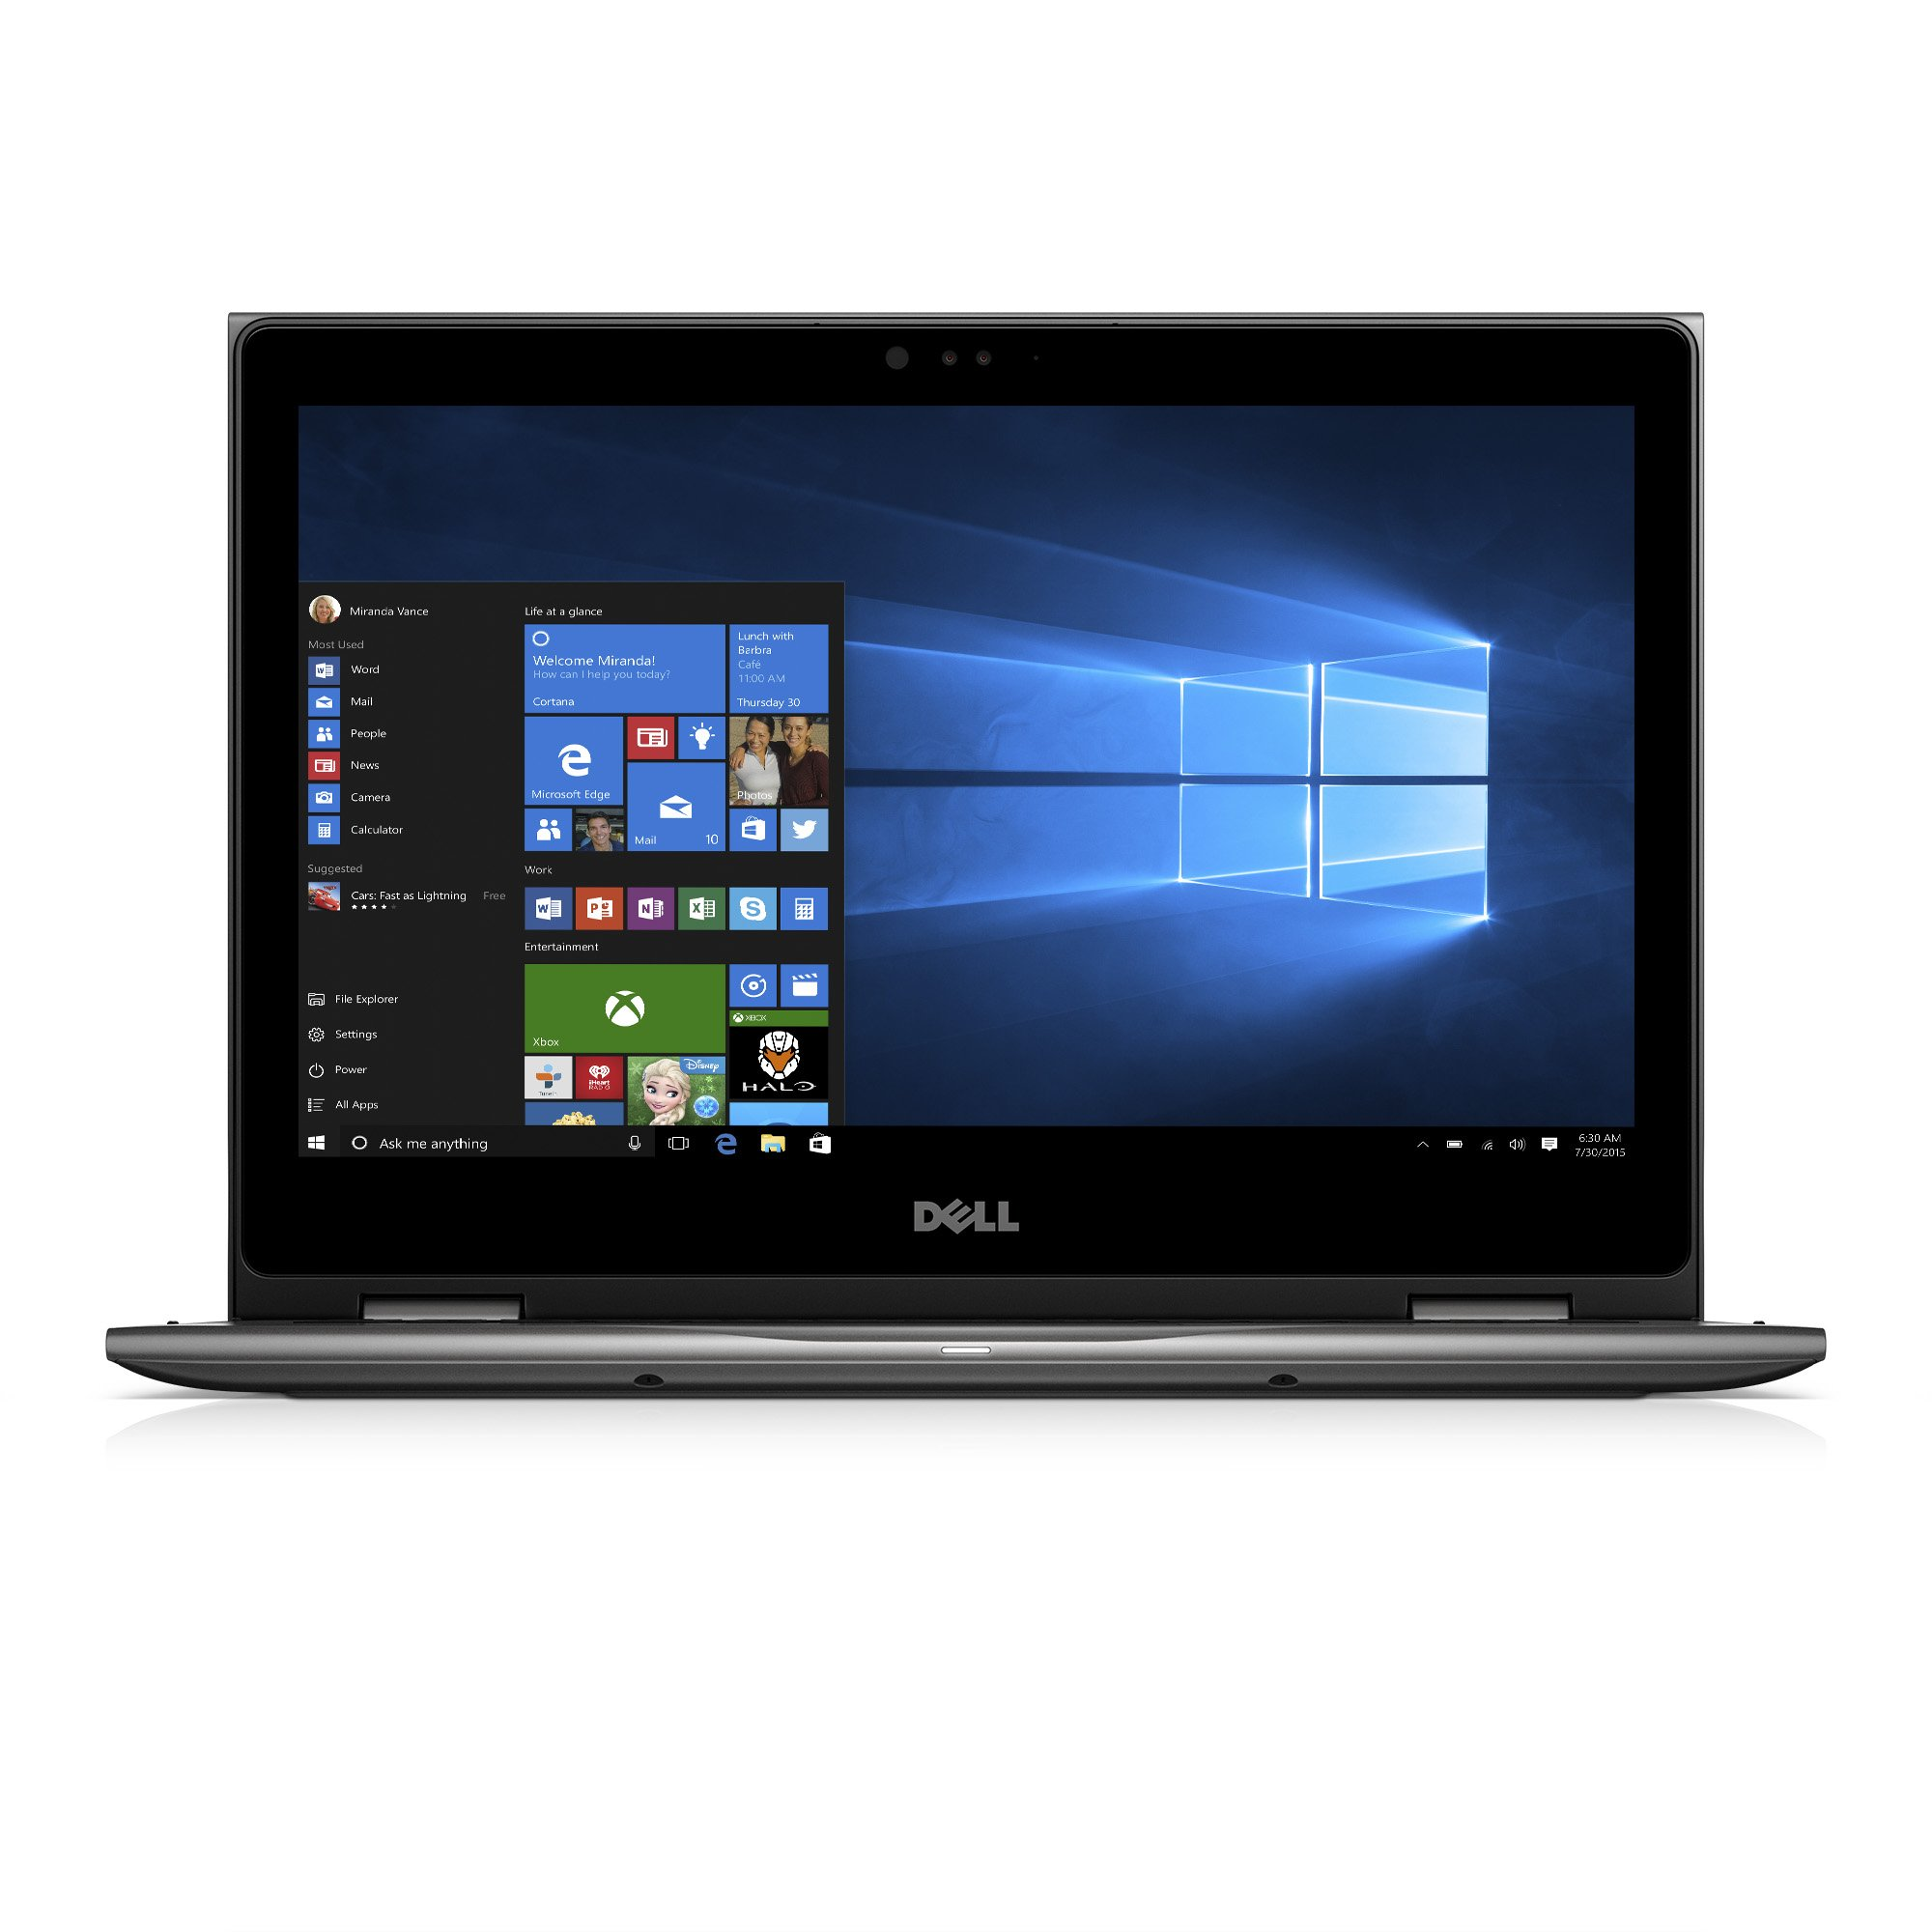 Dell Inspiron i5378-7171GRY 13.3 FHD 2-In-1 (7th Generation Intel Core i7, 8GB, 256GB SSD) Microsoft Signature Image by Dell